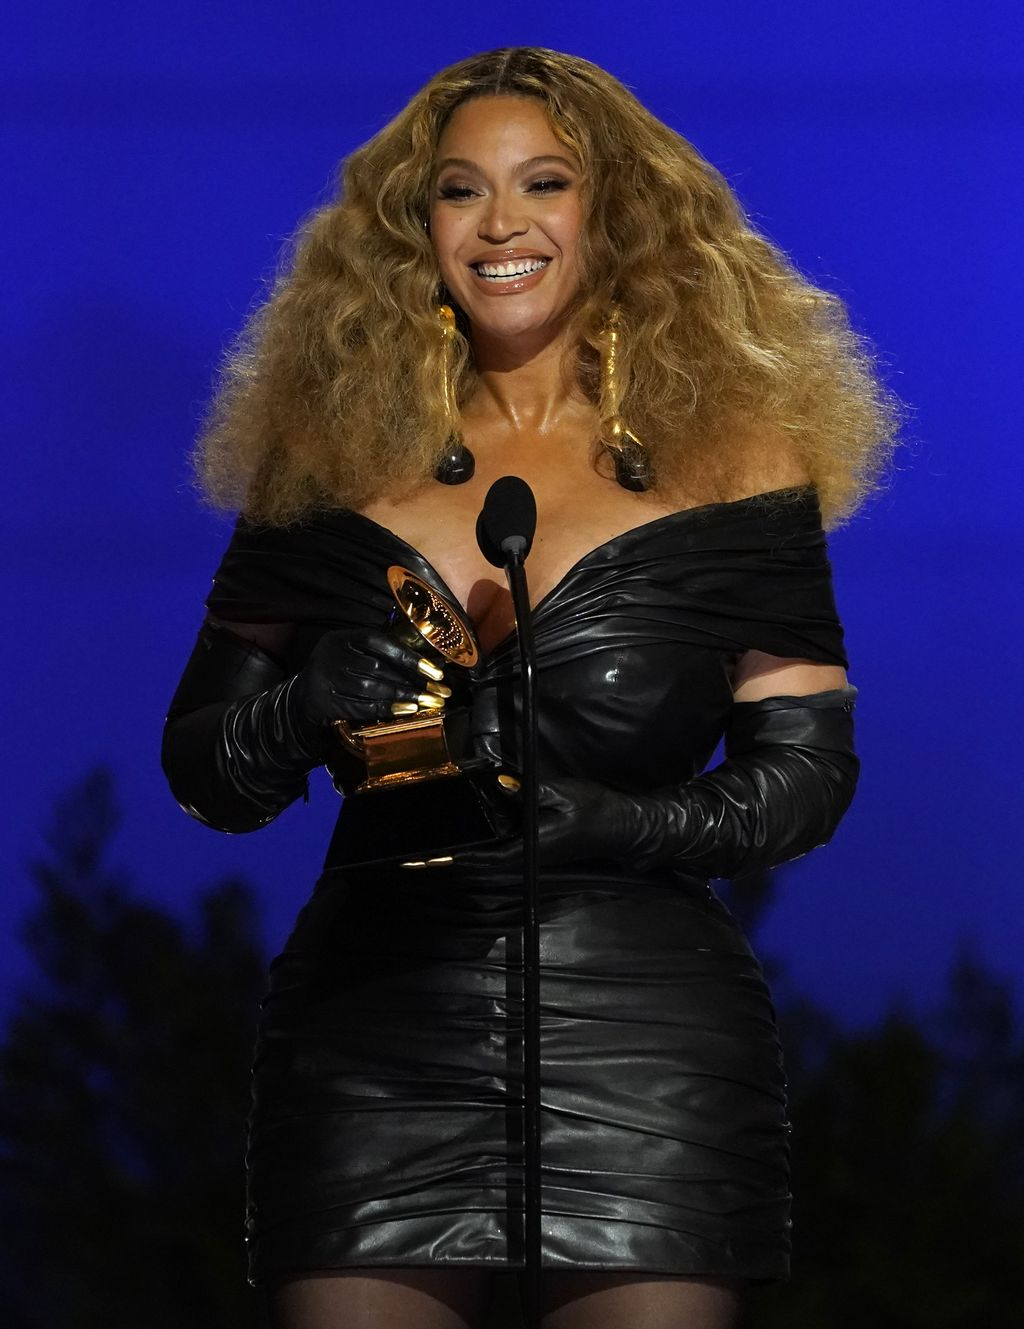 Beyonce appears in the audience at the 63rd annual Grammy Awards at the Los Angeles Convention Center on Sunday, March 14, 2021. (AP Photo/Chris Pizzello)